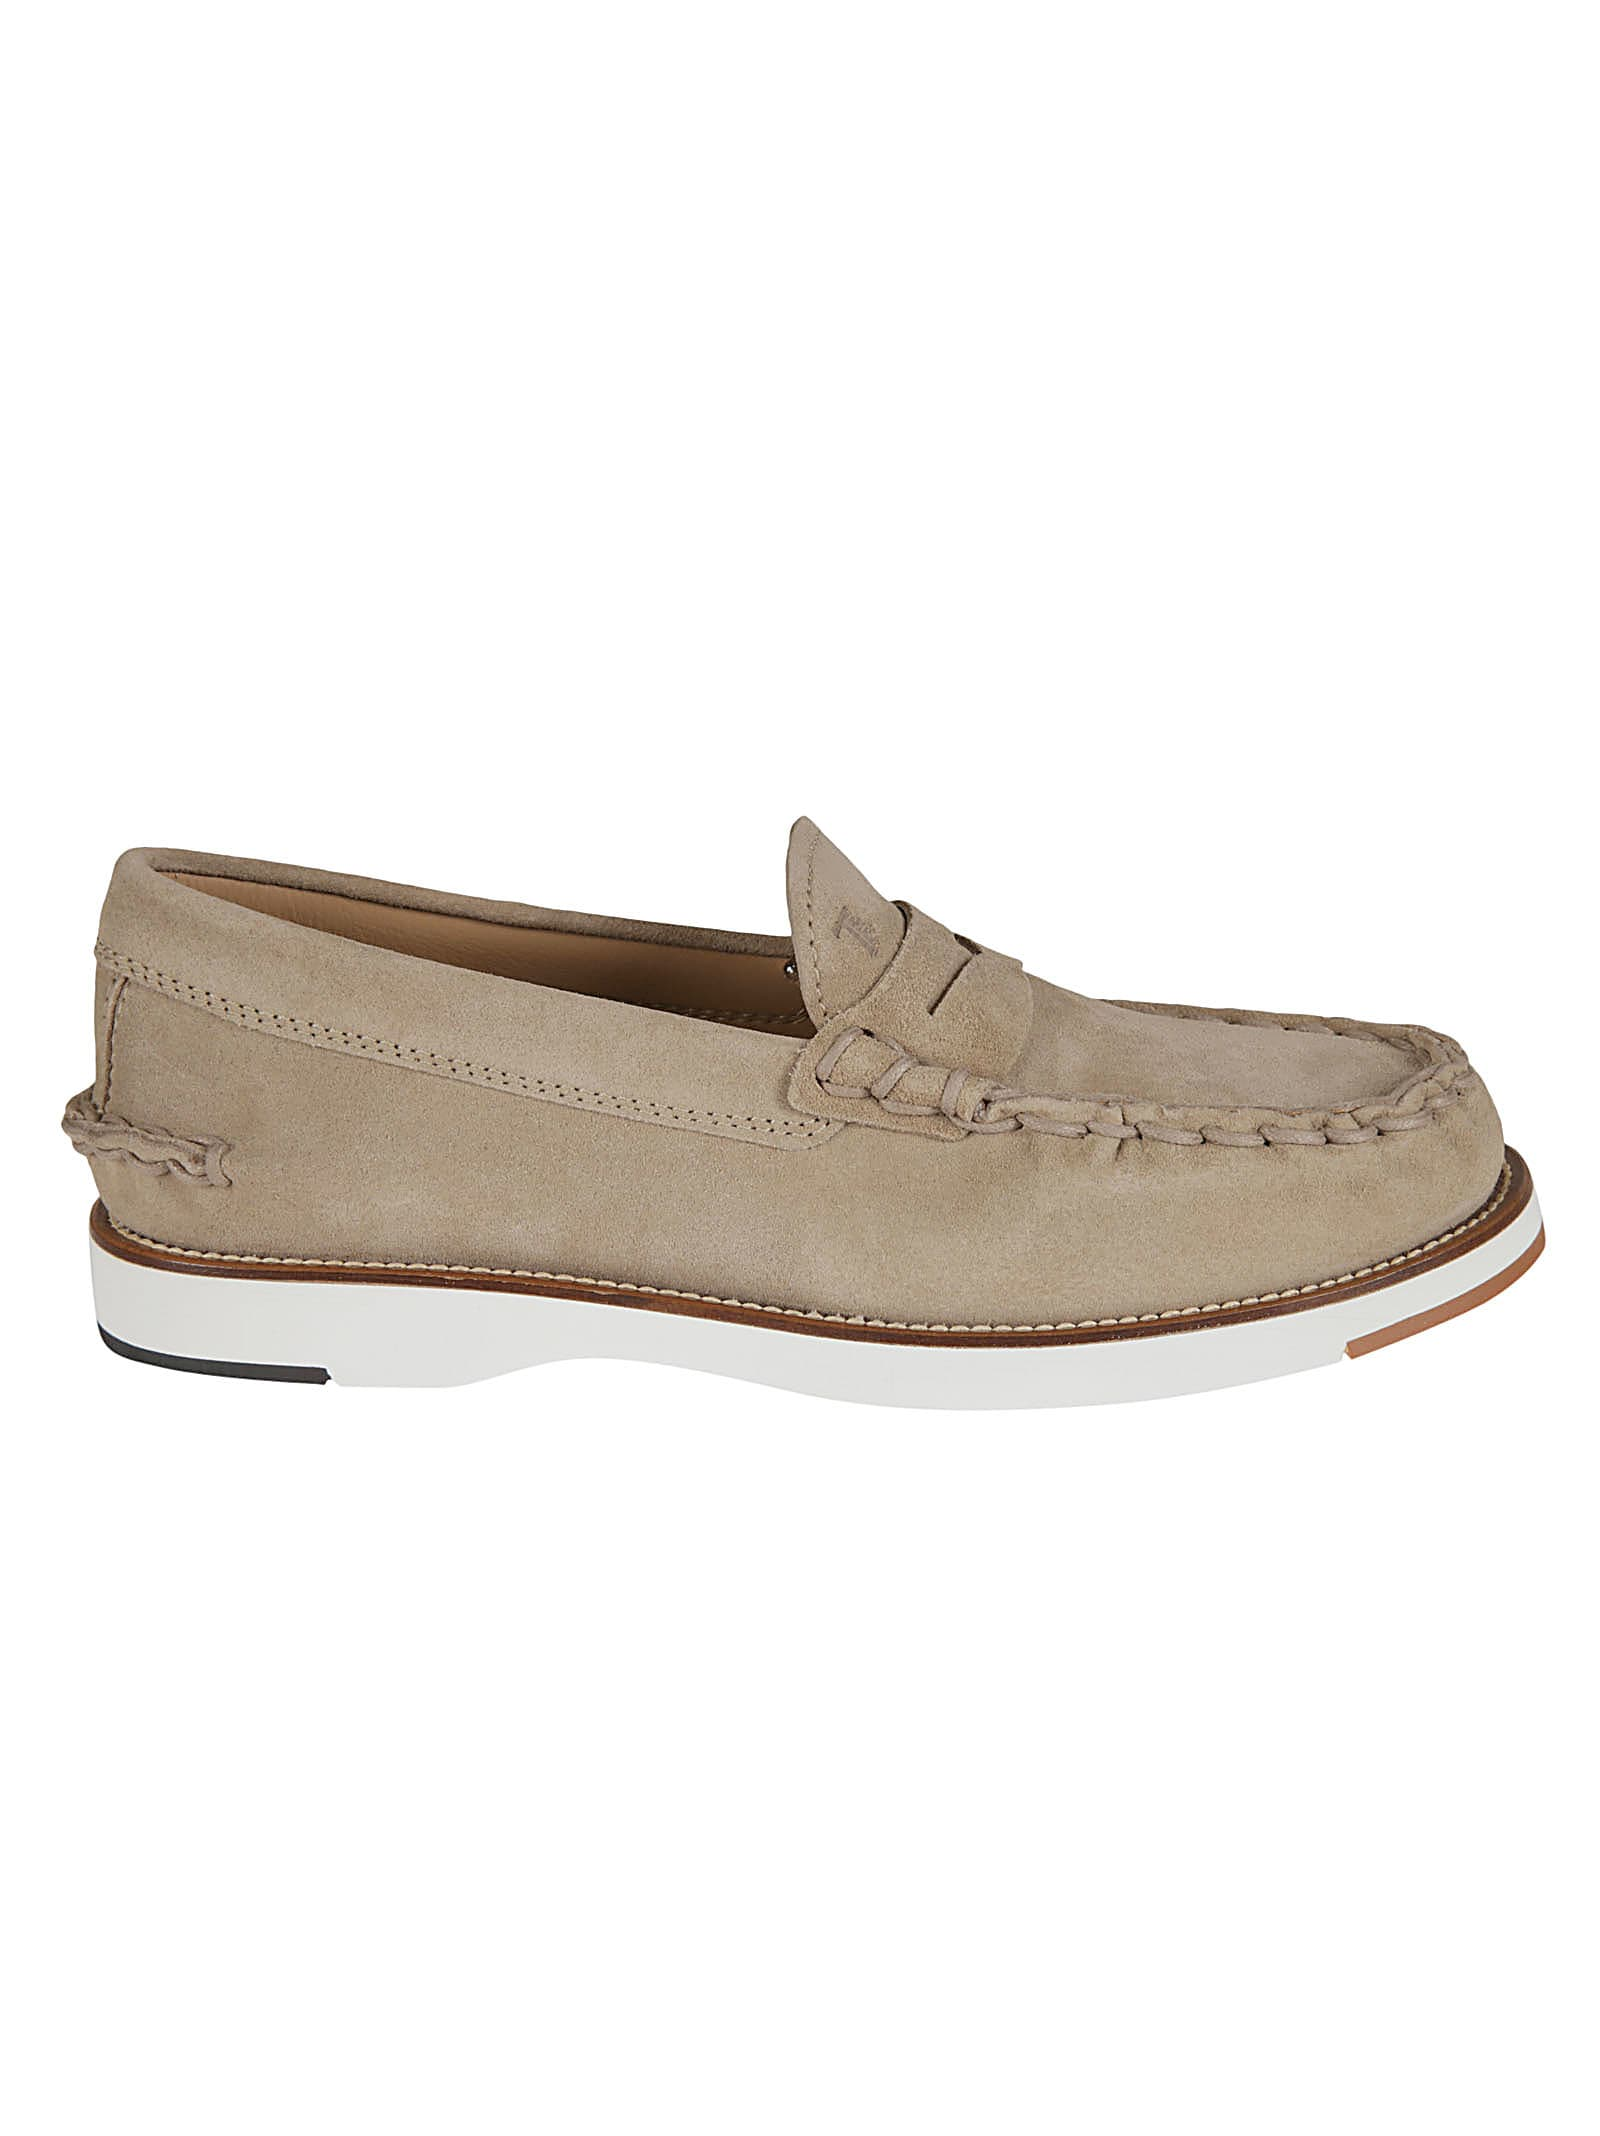 Tods Exposed Stitching Logo Stamp Loafers